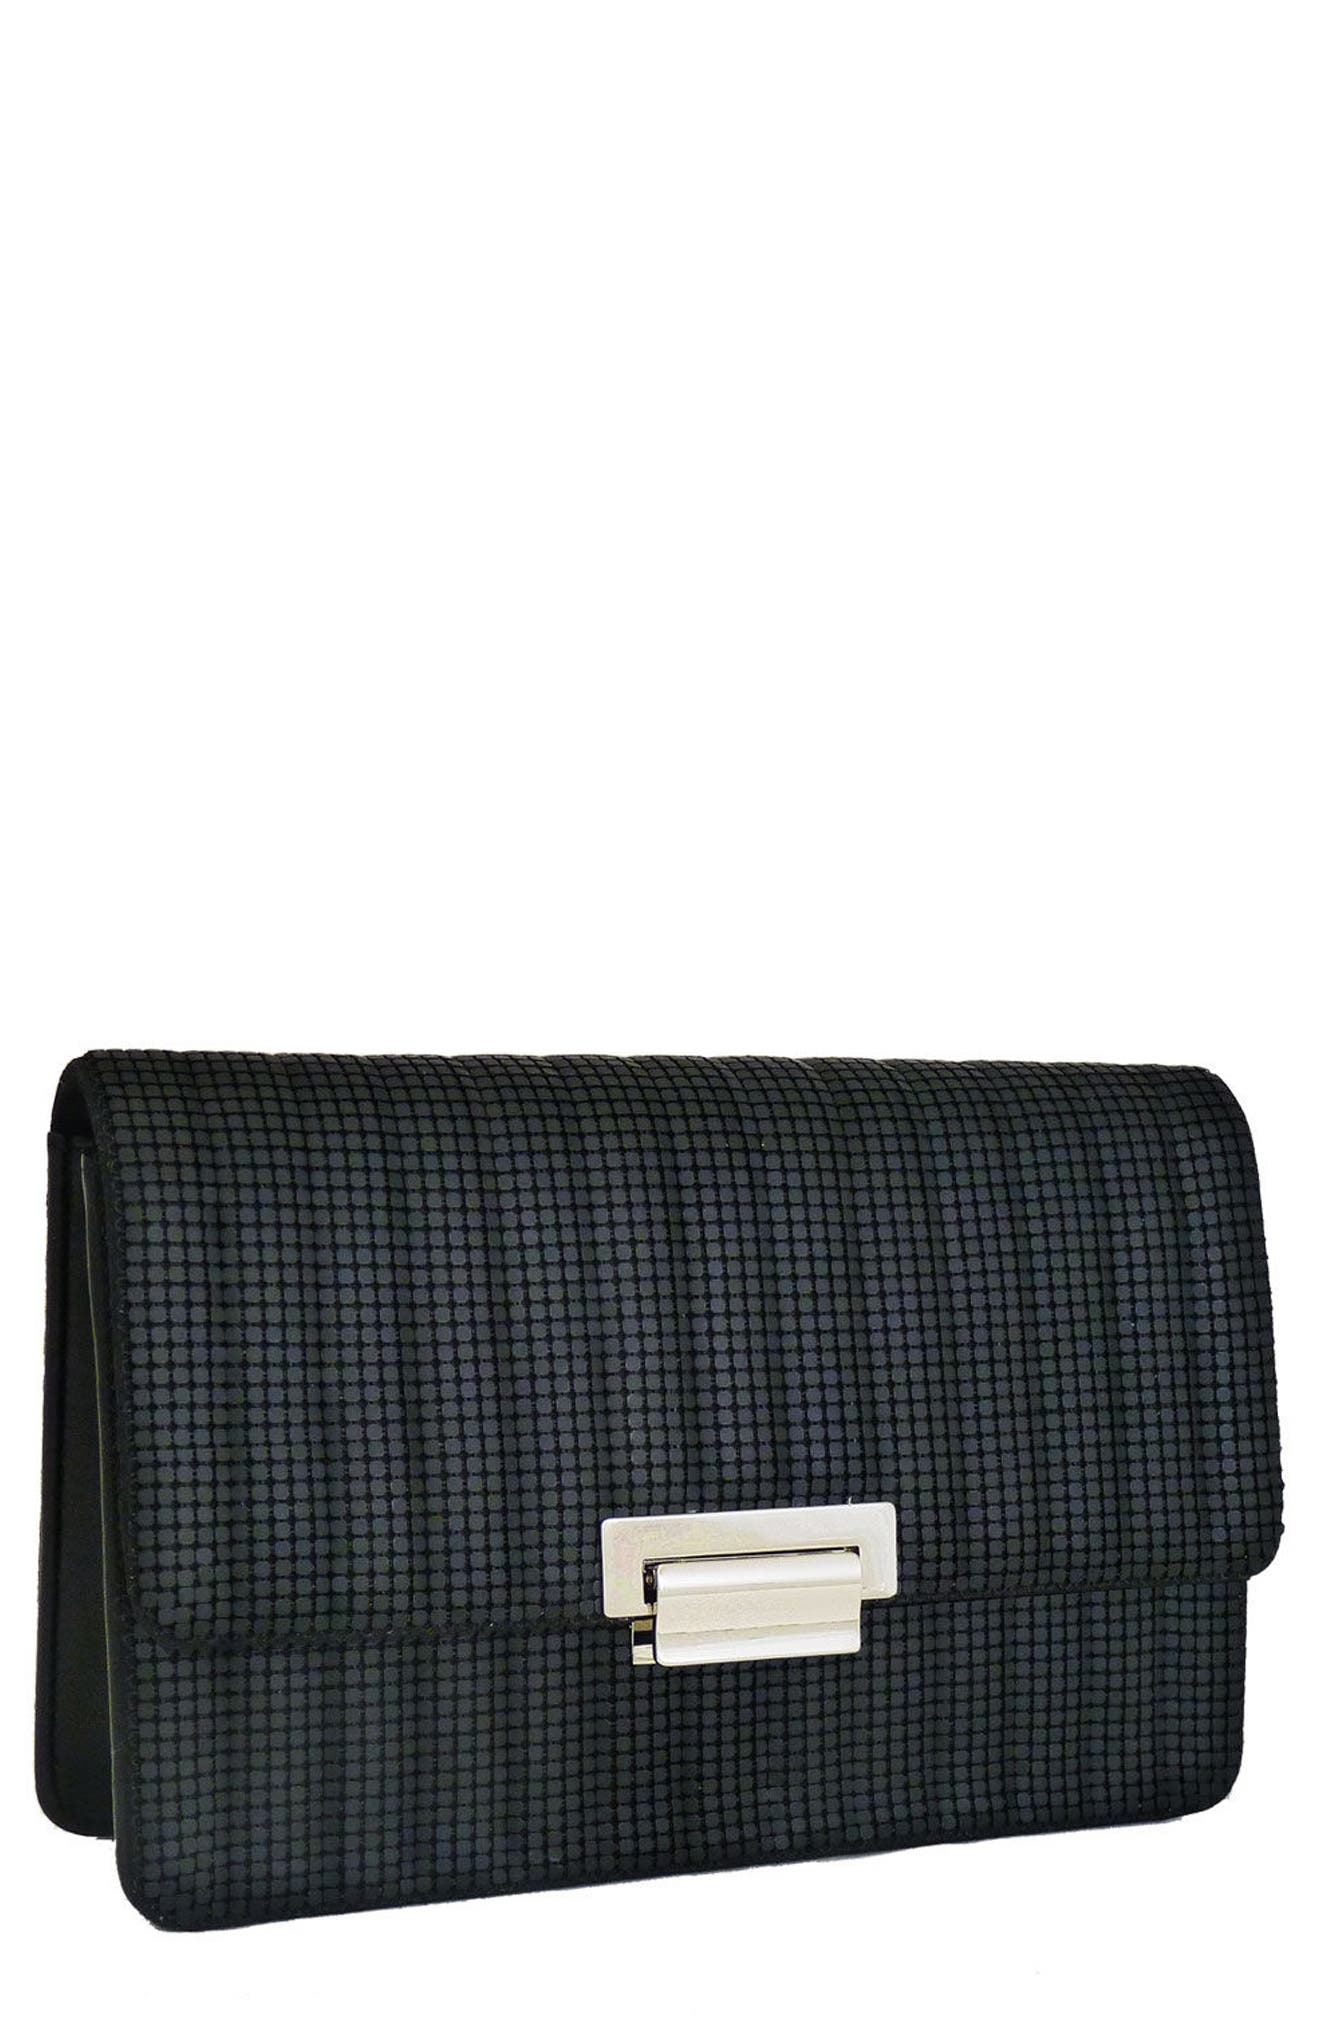 Sydney Quilted Clutch,                         Main,                         color, MATTE BLACK